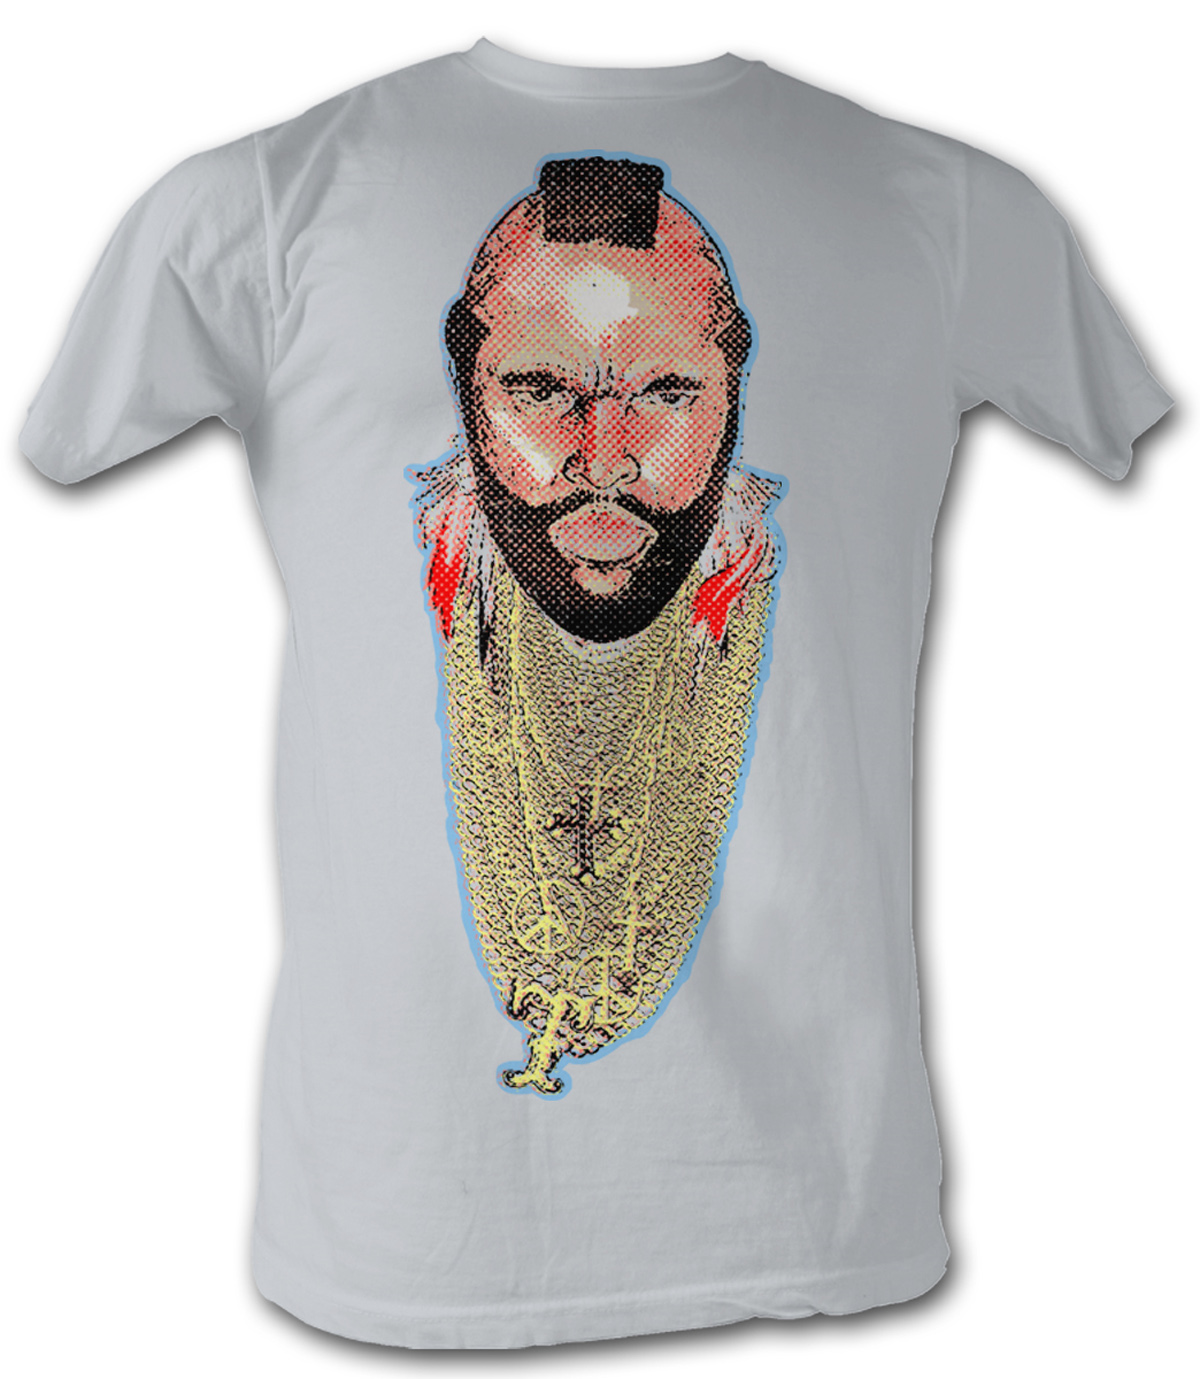 mr t t shirt chain of fool a team adult silver tee shirt mr t shirts. Black Bedroom Furniture Sets. Home Design Ideas